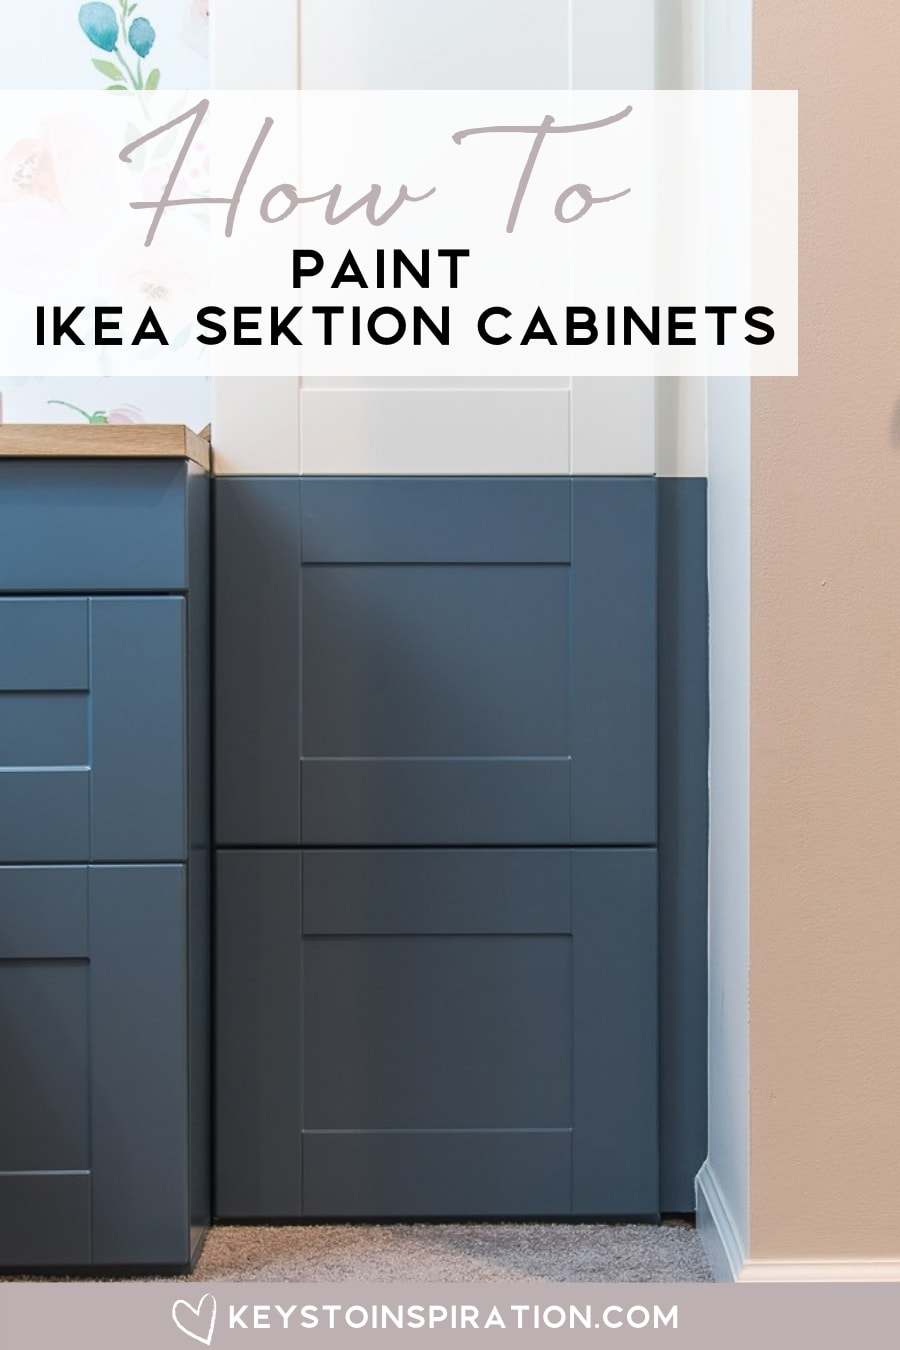 navy blue painted IKEA SEKTION cabinet in modern home office